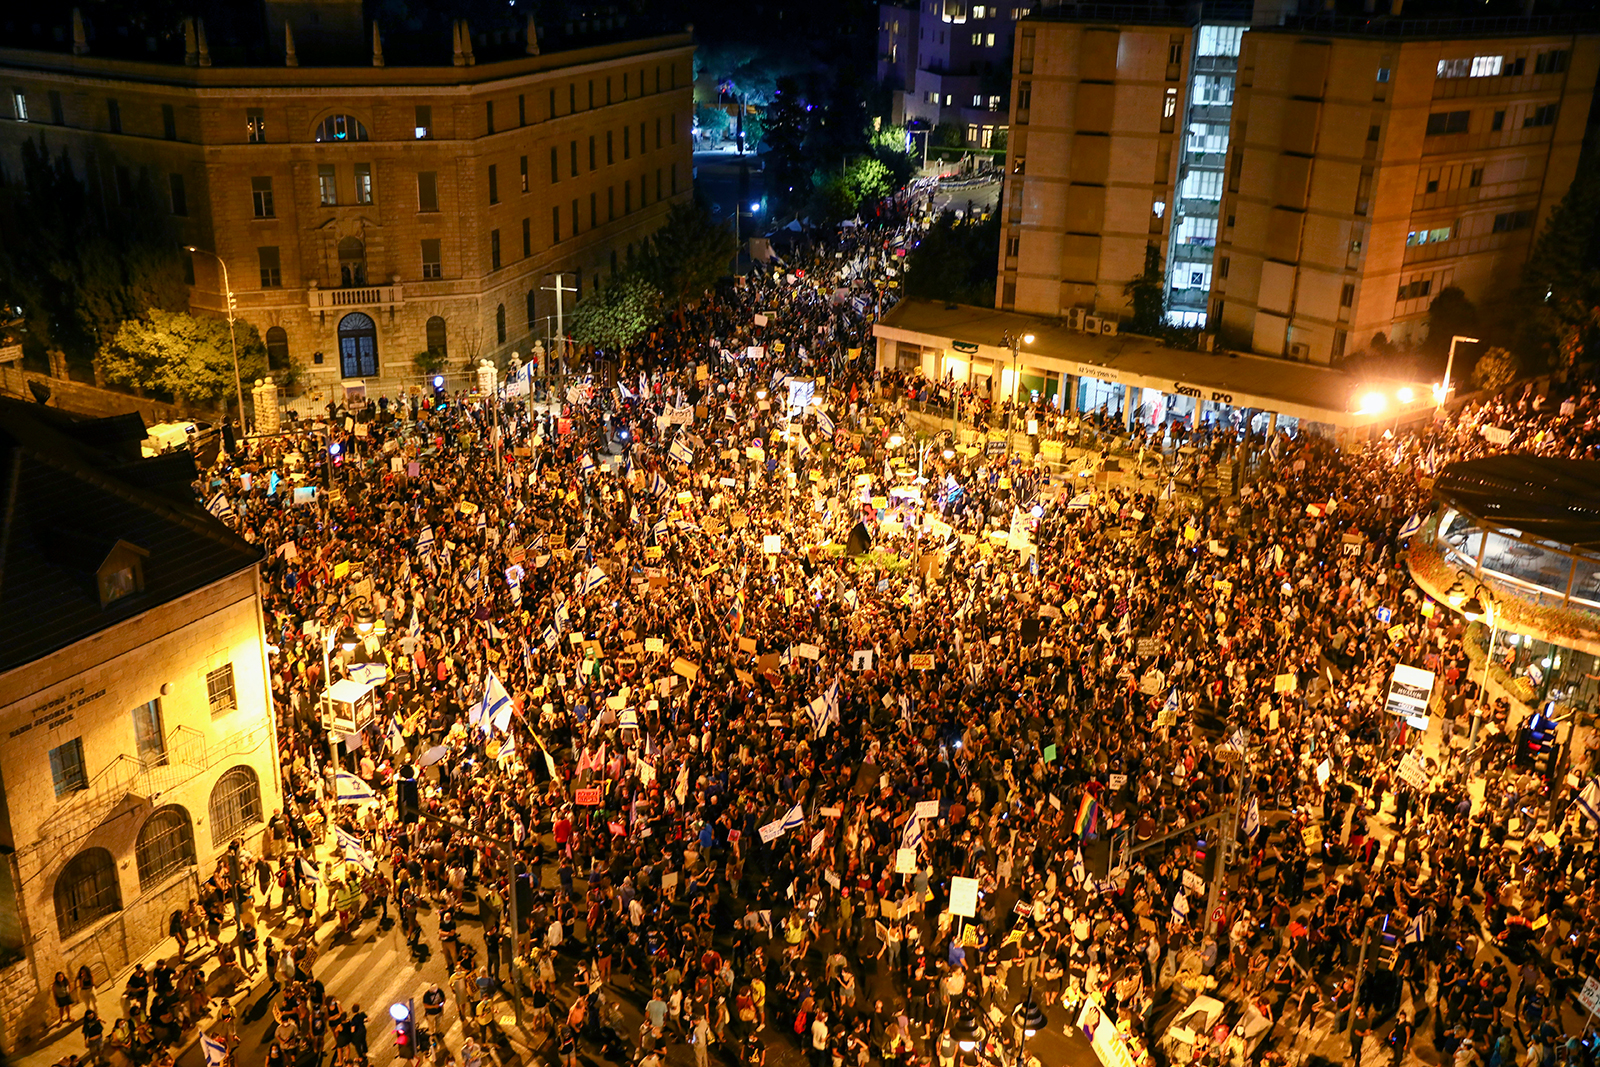 Thousands of protesters chant slogans and hold signs during a protest against Israel's Prime Minister Benjamin Netanyahu outside his residence in Jerusalem, on August 1.